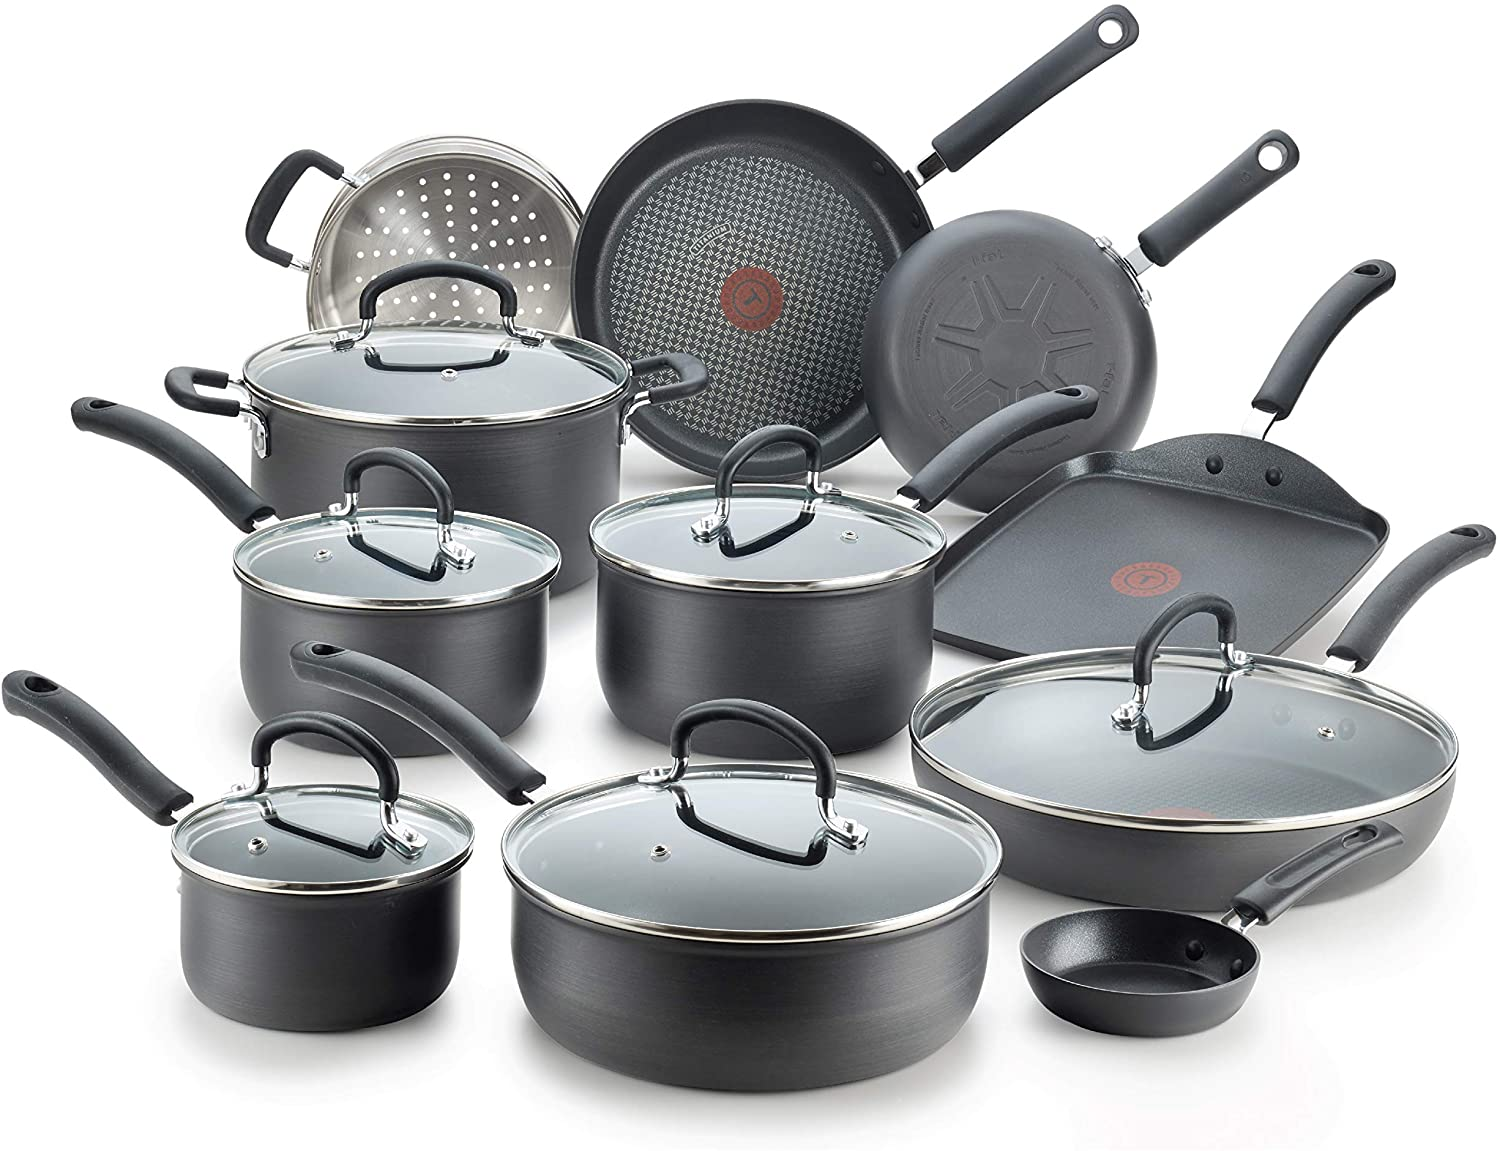 T-fal Ultimate 17 Piece Cookware Set